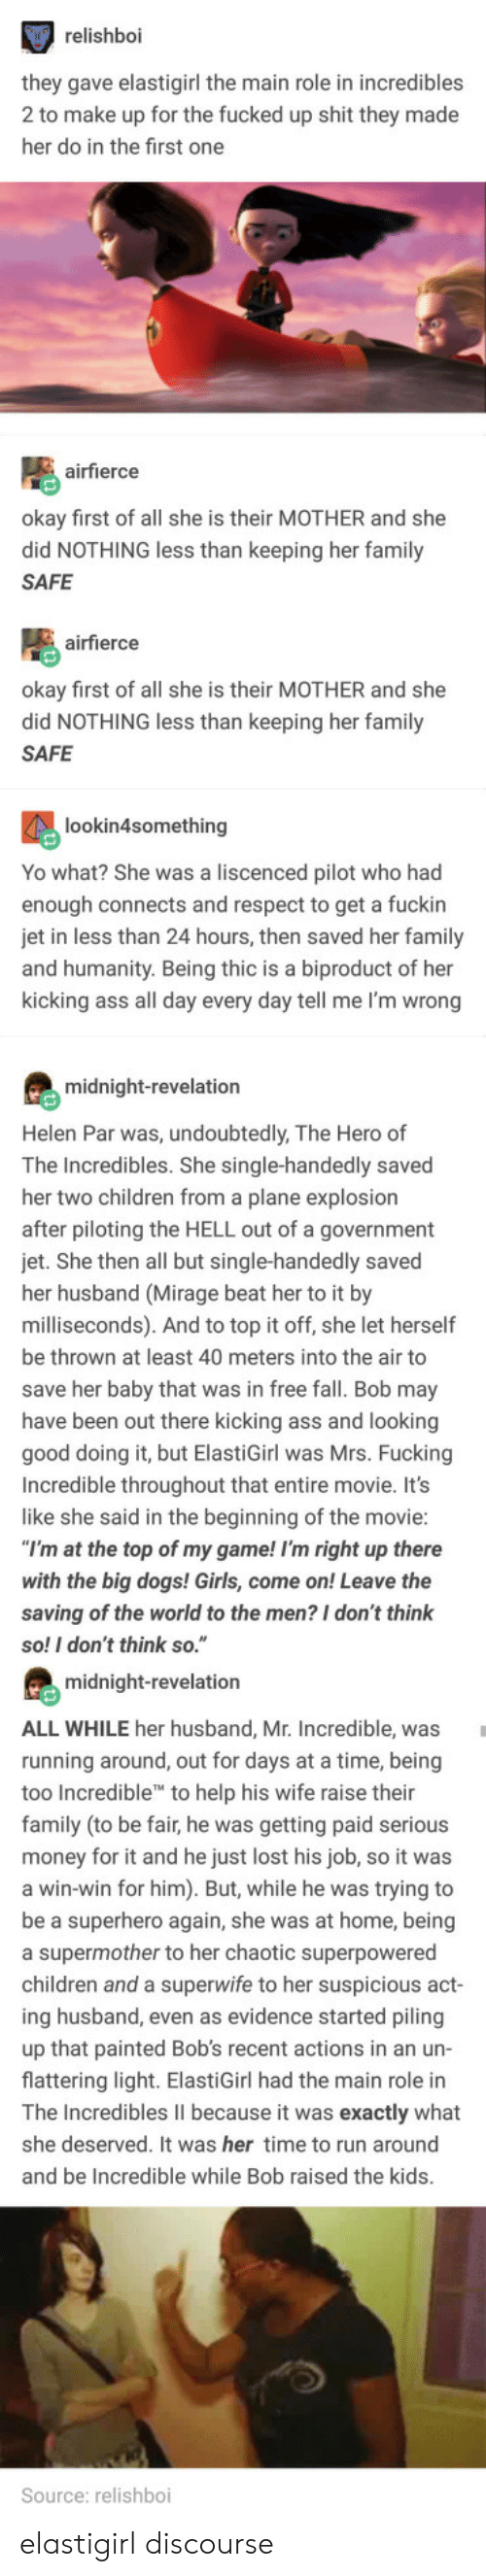 """incredibles: relishboi  hey gave elastigirl the main role in incredibles  2 to make up for the fucked up shit they made  her do in the first one  airfierce  kay first of all she is their MOTHER and she  did NOTHING less than keeping her family  SAFE  airfierce  okay first of all she is their MOTHER and she  did NOTHING less than keeping her family  SAFE  lookin4something  Yo what? She was a liscenced pilot who had  enough connects and respect to get a fuckin  in less than 24 hours, then saved her family  nd humanity. Being thic is a biproduct of her  kicking ass all day every day tell me I'm wrong  midnight-revelation  Helen Par was, undoubtedly, The Hero of  The Incredibles. She single-handedly saved  her two children from a plane explosion  fter piloting the HELL out of a government  jet. She then all but single-handedly saved  her husband (Mirage beat her to it by  milliseconds). And to top it off, she let herself  be thrown at least 40 meters into the air to  save her baby that was in free fall. Bob may  have been out there kicking ass and looking  good  Incredible throughout that entire movie. It's  like she said in the beginning of the movie  doing it, but ElastiGirl was Mrs. Fucking  at the top of my game! I'm right up there  with the big dogs! Girls, come on! Leave the  saving of the world to the men? I don't think  so! I don't think so.""""  midnight-revelation  ALL WHILE her husband, Mr. Incredible, was  running around, out for days at a time, being  too In  family (to be fair, he was getting paid serious  credible to help his wife raise their  ney for it and he just lost his job, so it was  win-win for him). But, while he was trying to  e a superhero again, she was at home, being  a supermother to her chaotic superpowered  children and a superwife to her suspicious a  ing husband, even as evidence started piling  up that painted Bob's recent actions in an un-  flattering light. ElastiGirl had the main role in  ct  he Incredibles lII because it was exactly wh"""